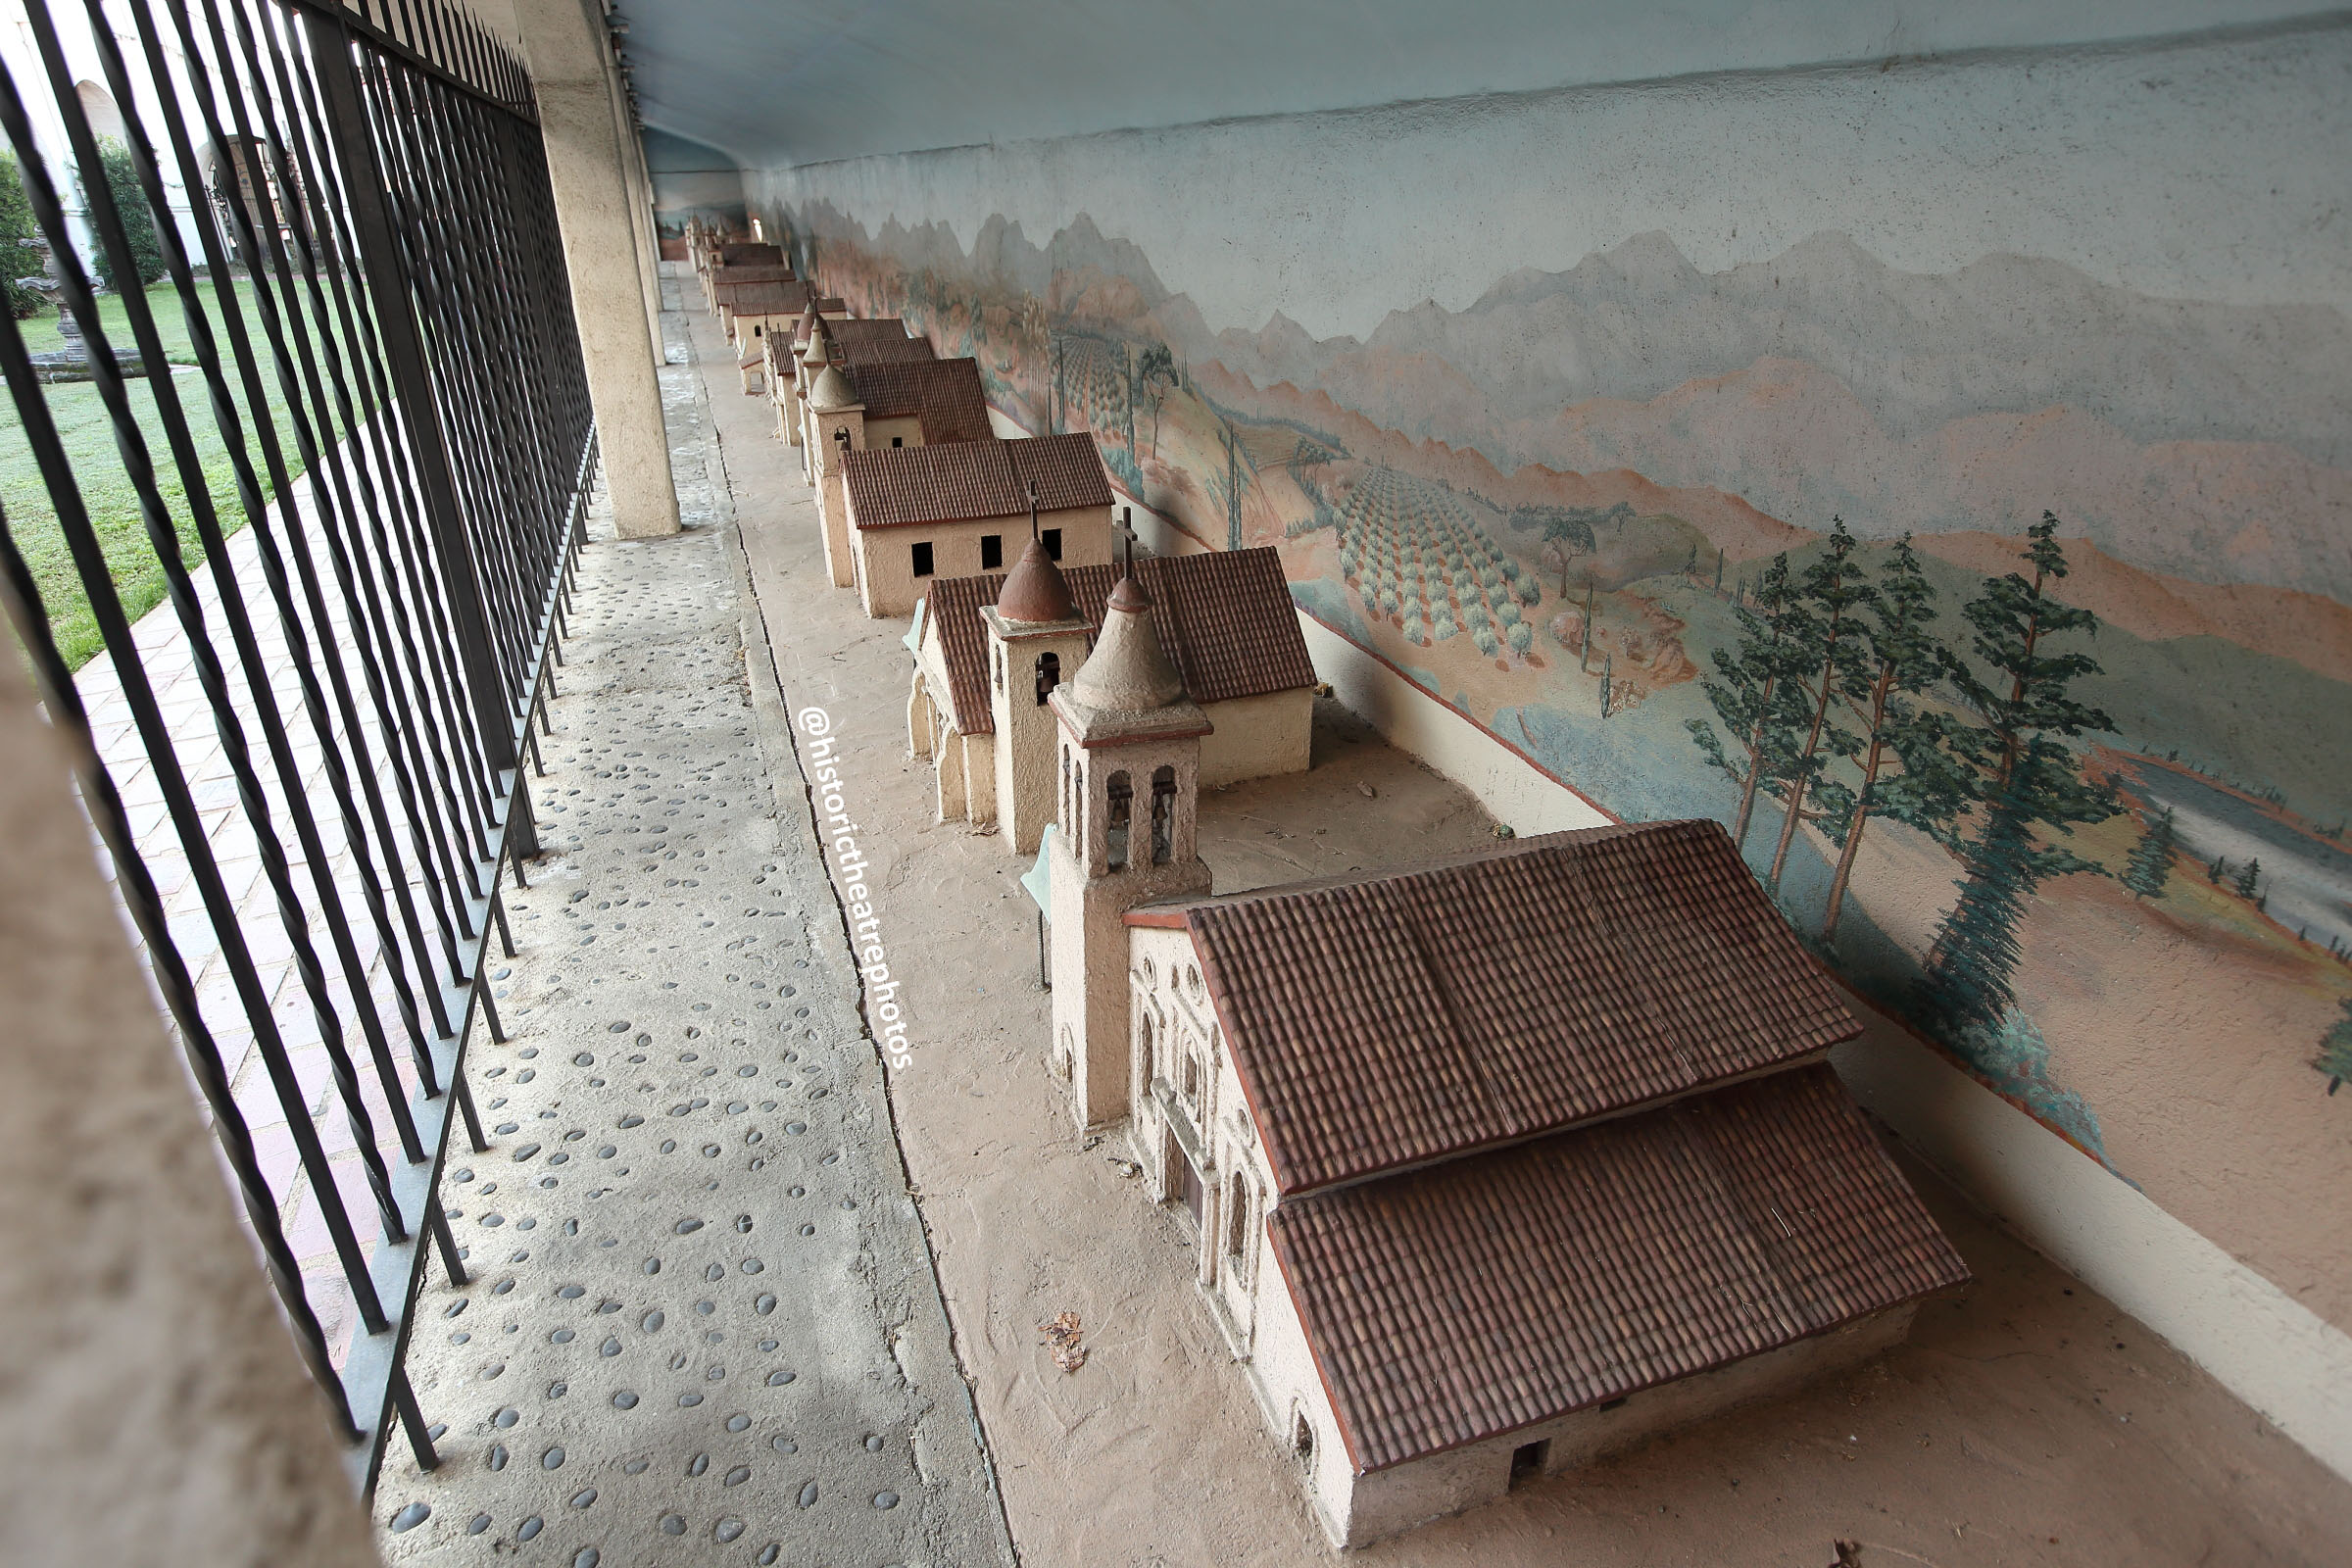 San Gabriel Mission Playhouse: 1930s California Mission models